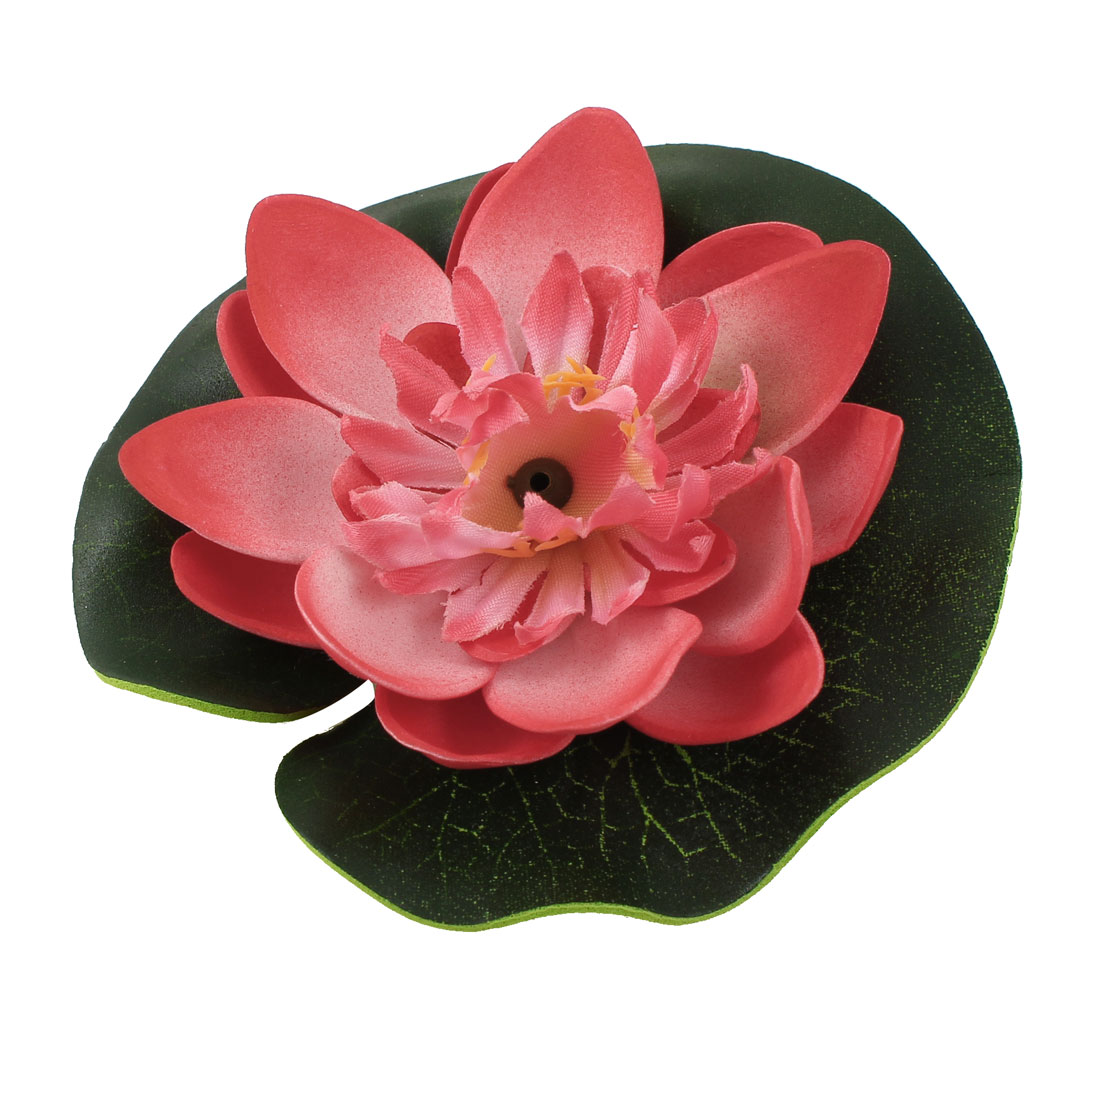 Aquarium Tank Lotus Shaped Foam Floating Plant Decor Red Green